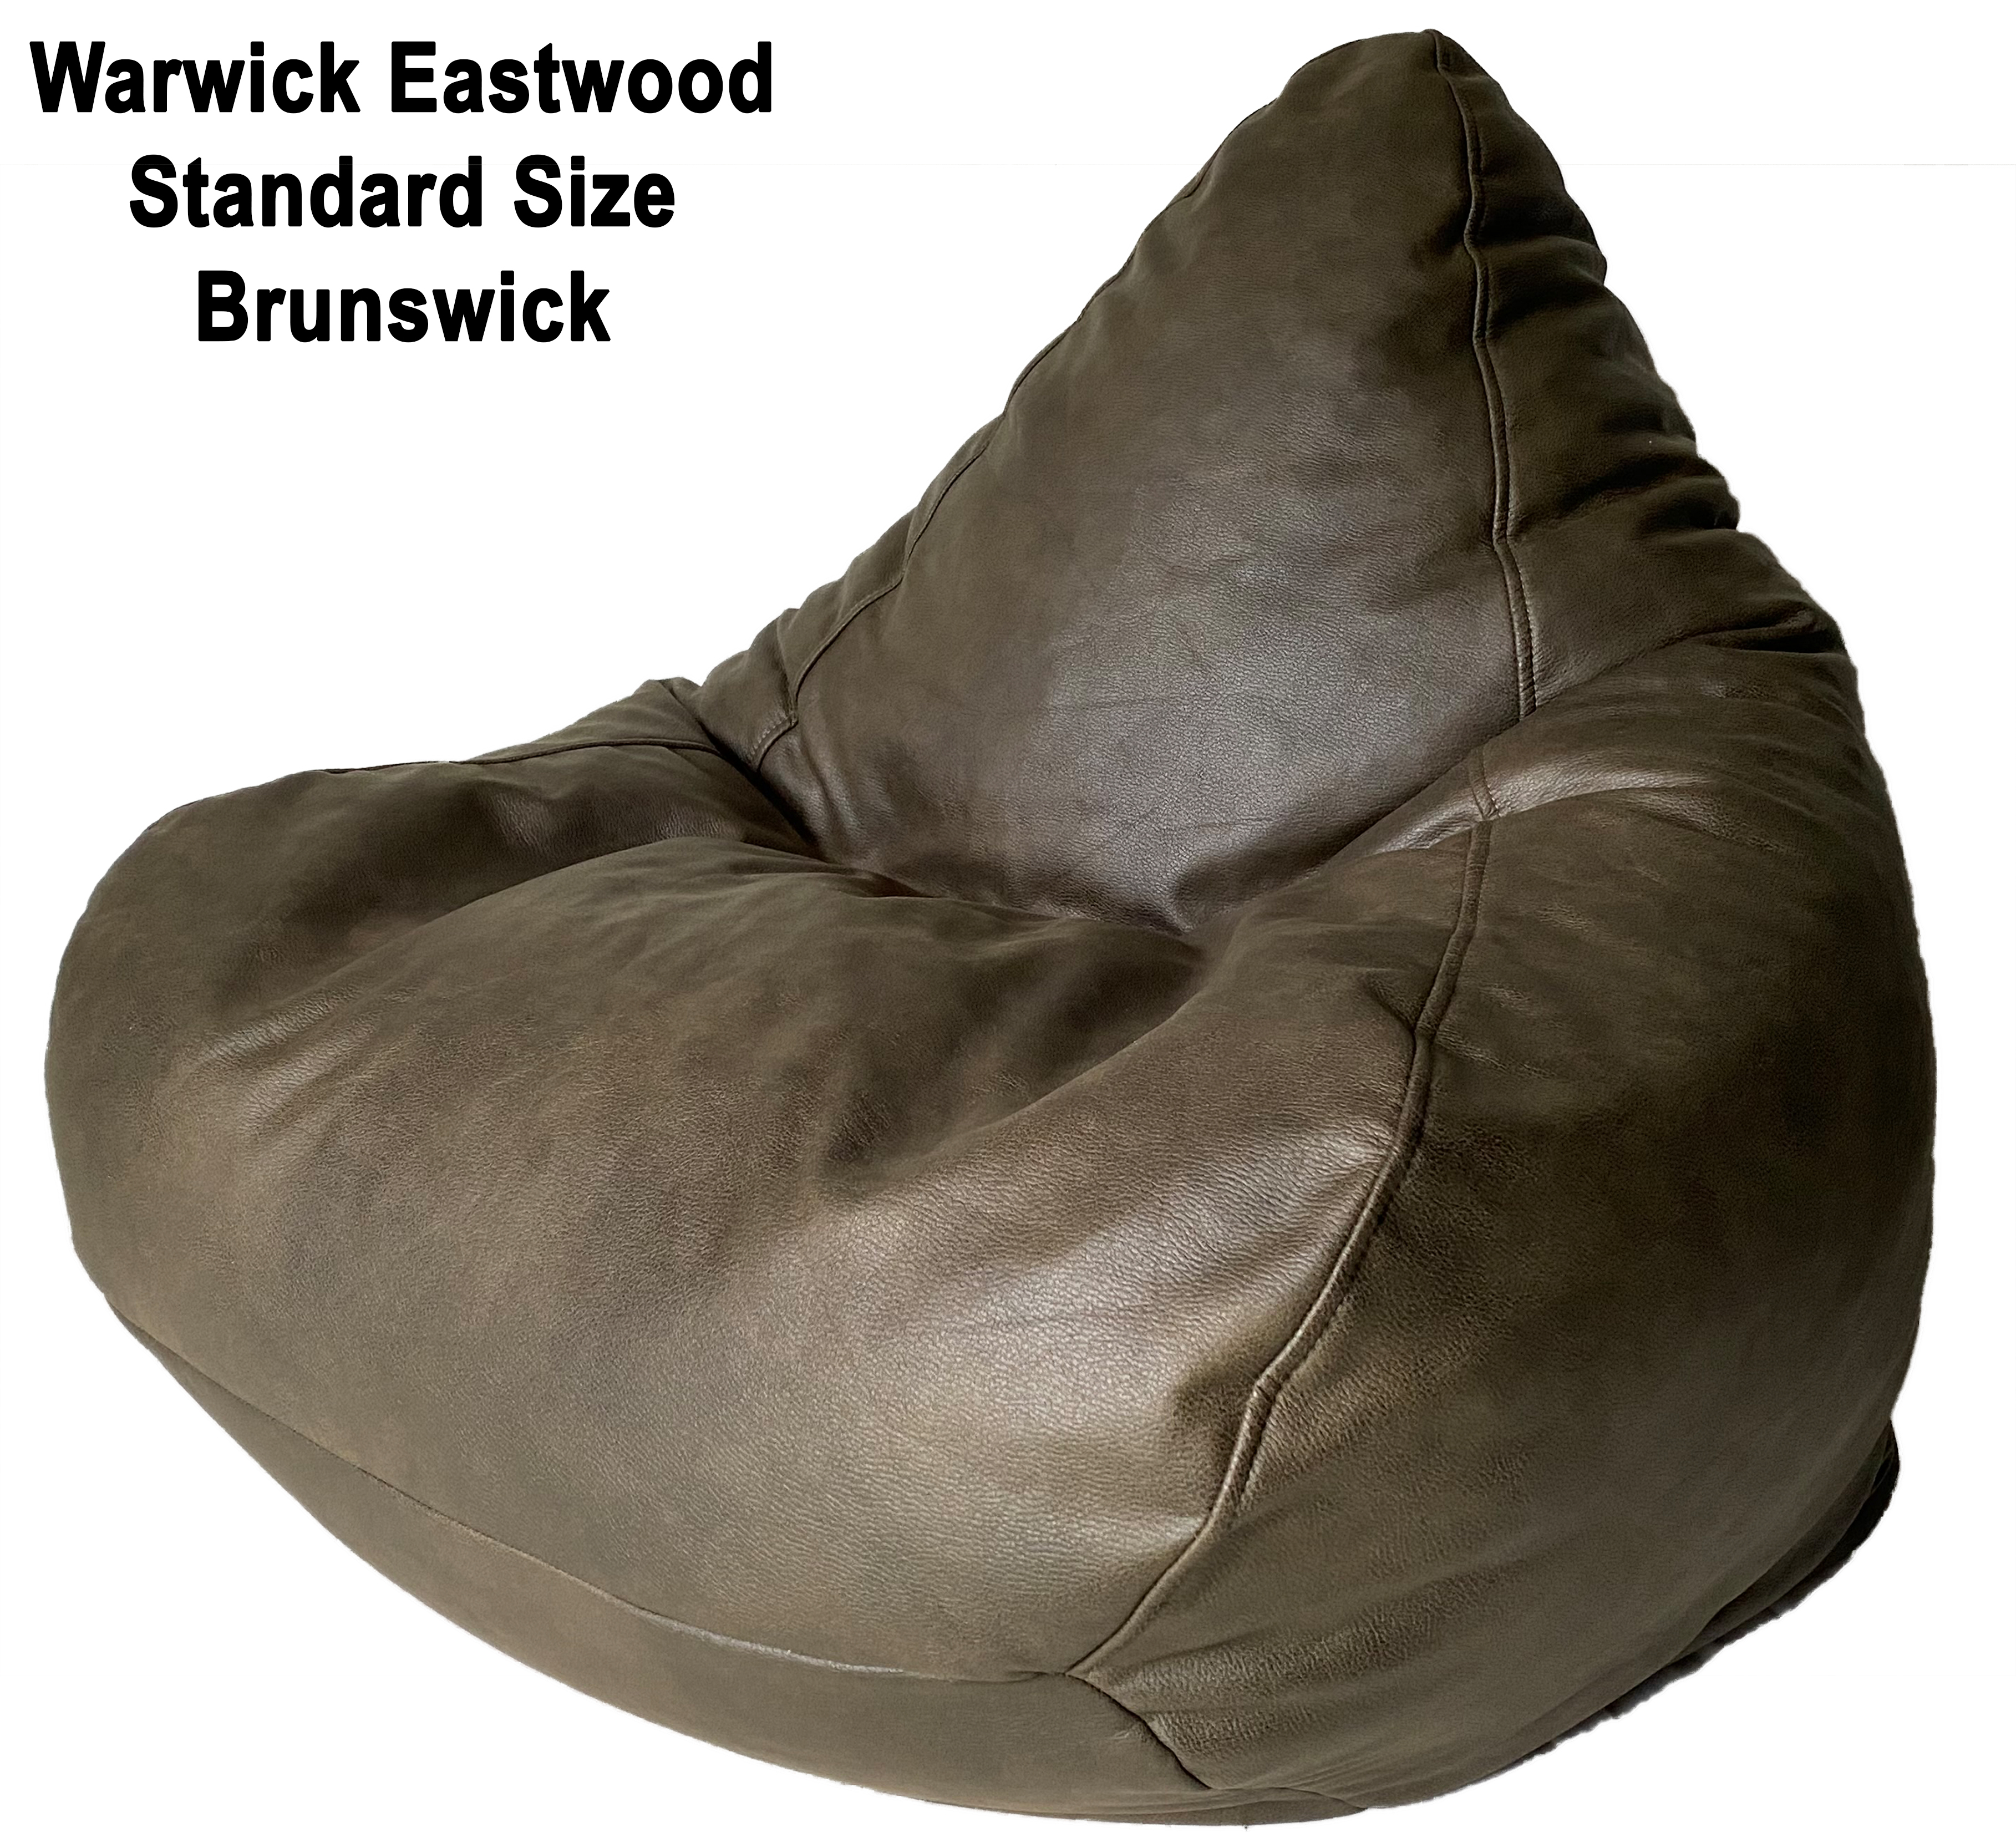 Warwick Eastwood Standard Size Bean Bag in assorted colours